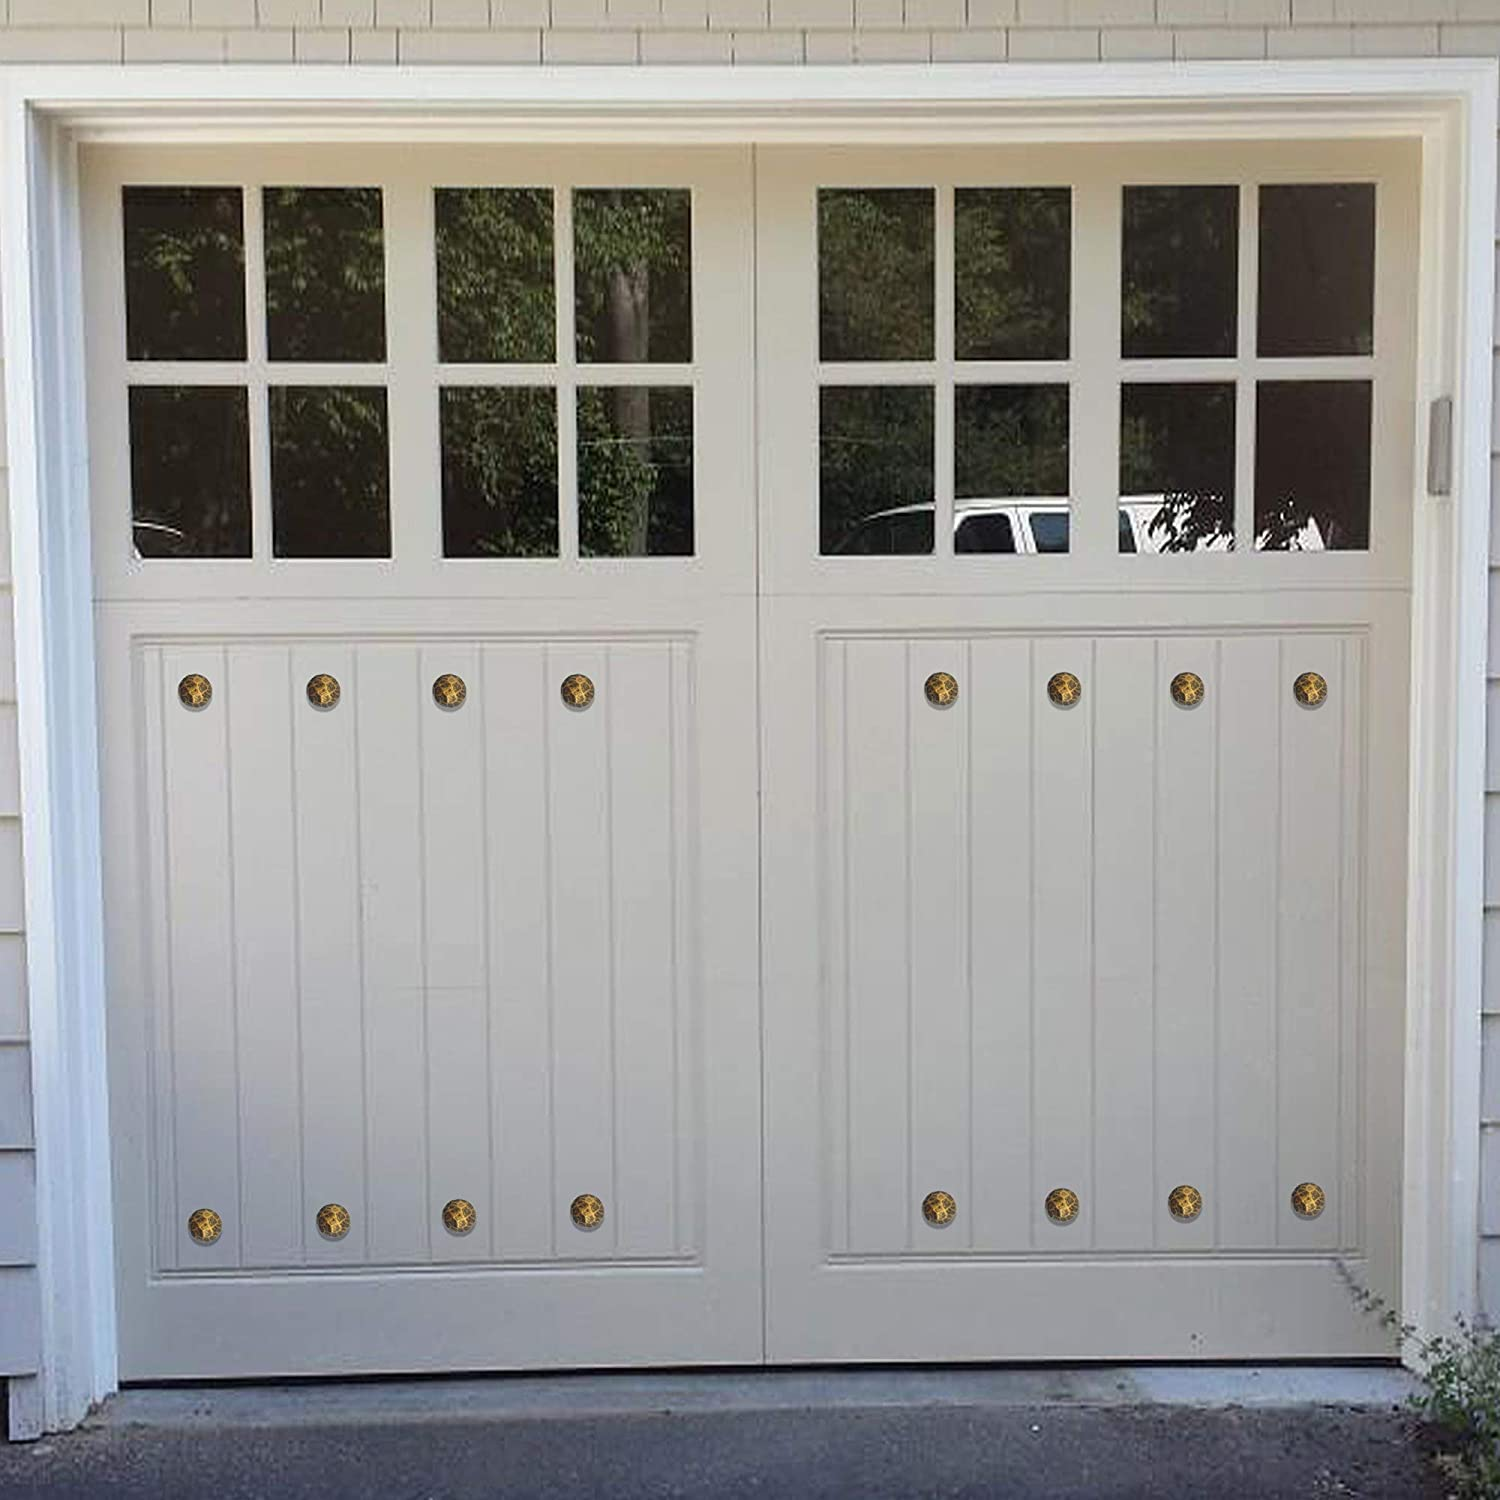 Added Instant Curb Appeal to Your Garage Door Decoration